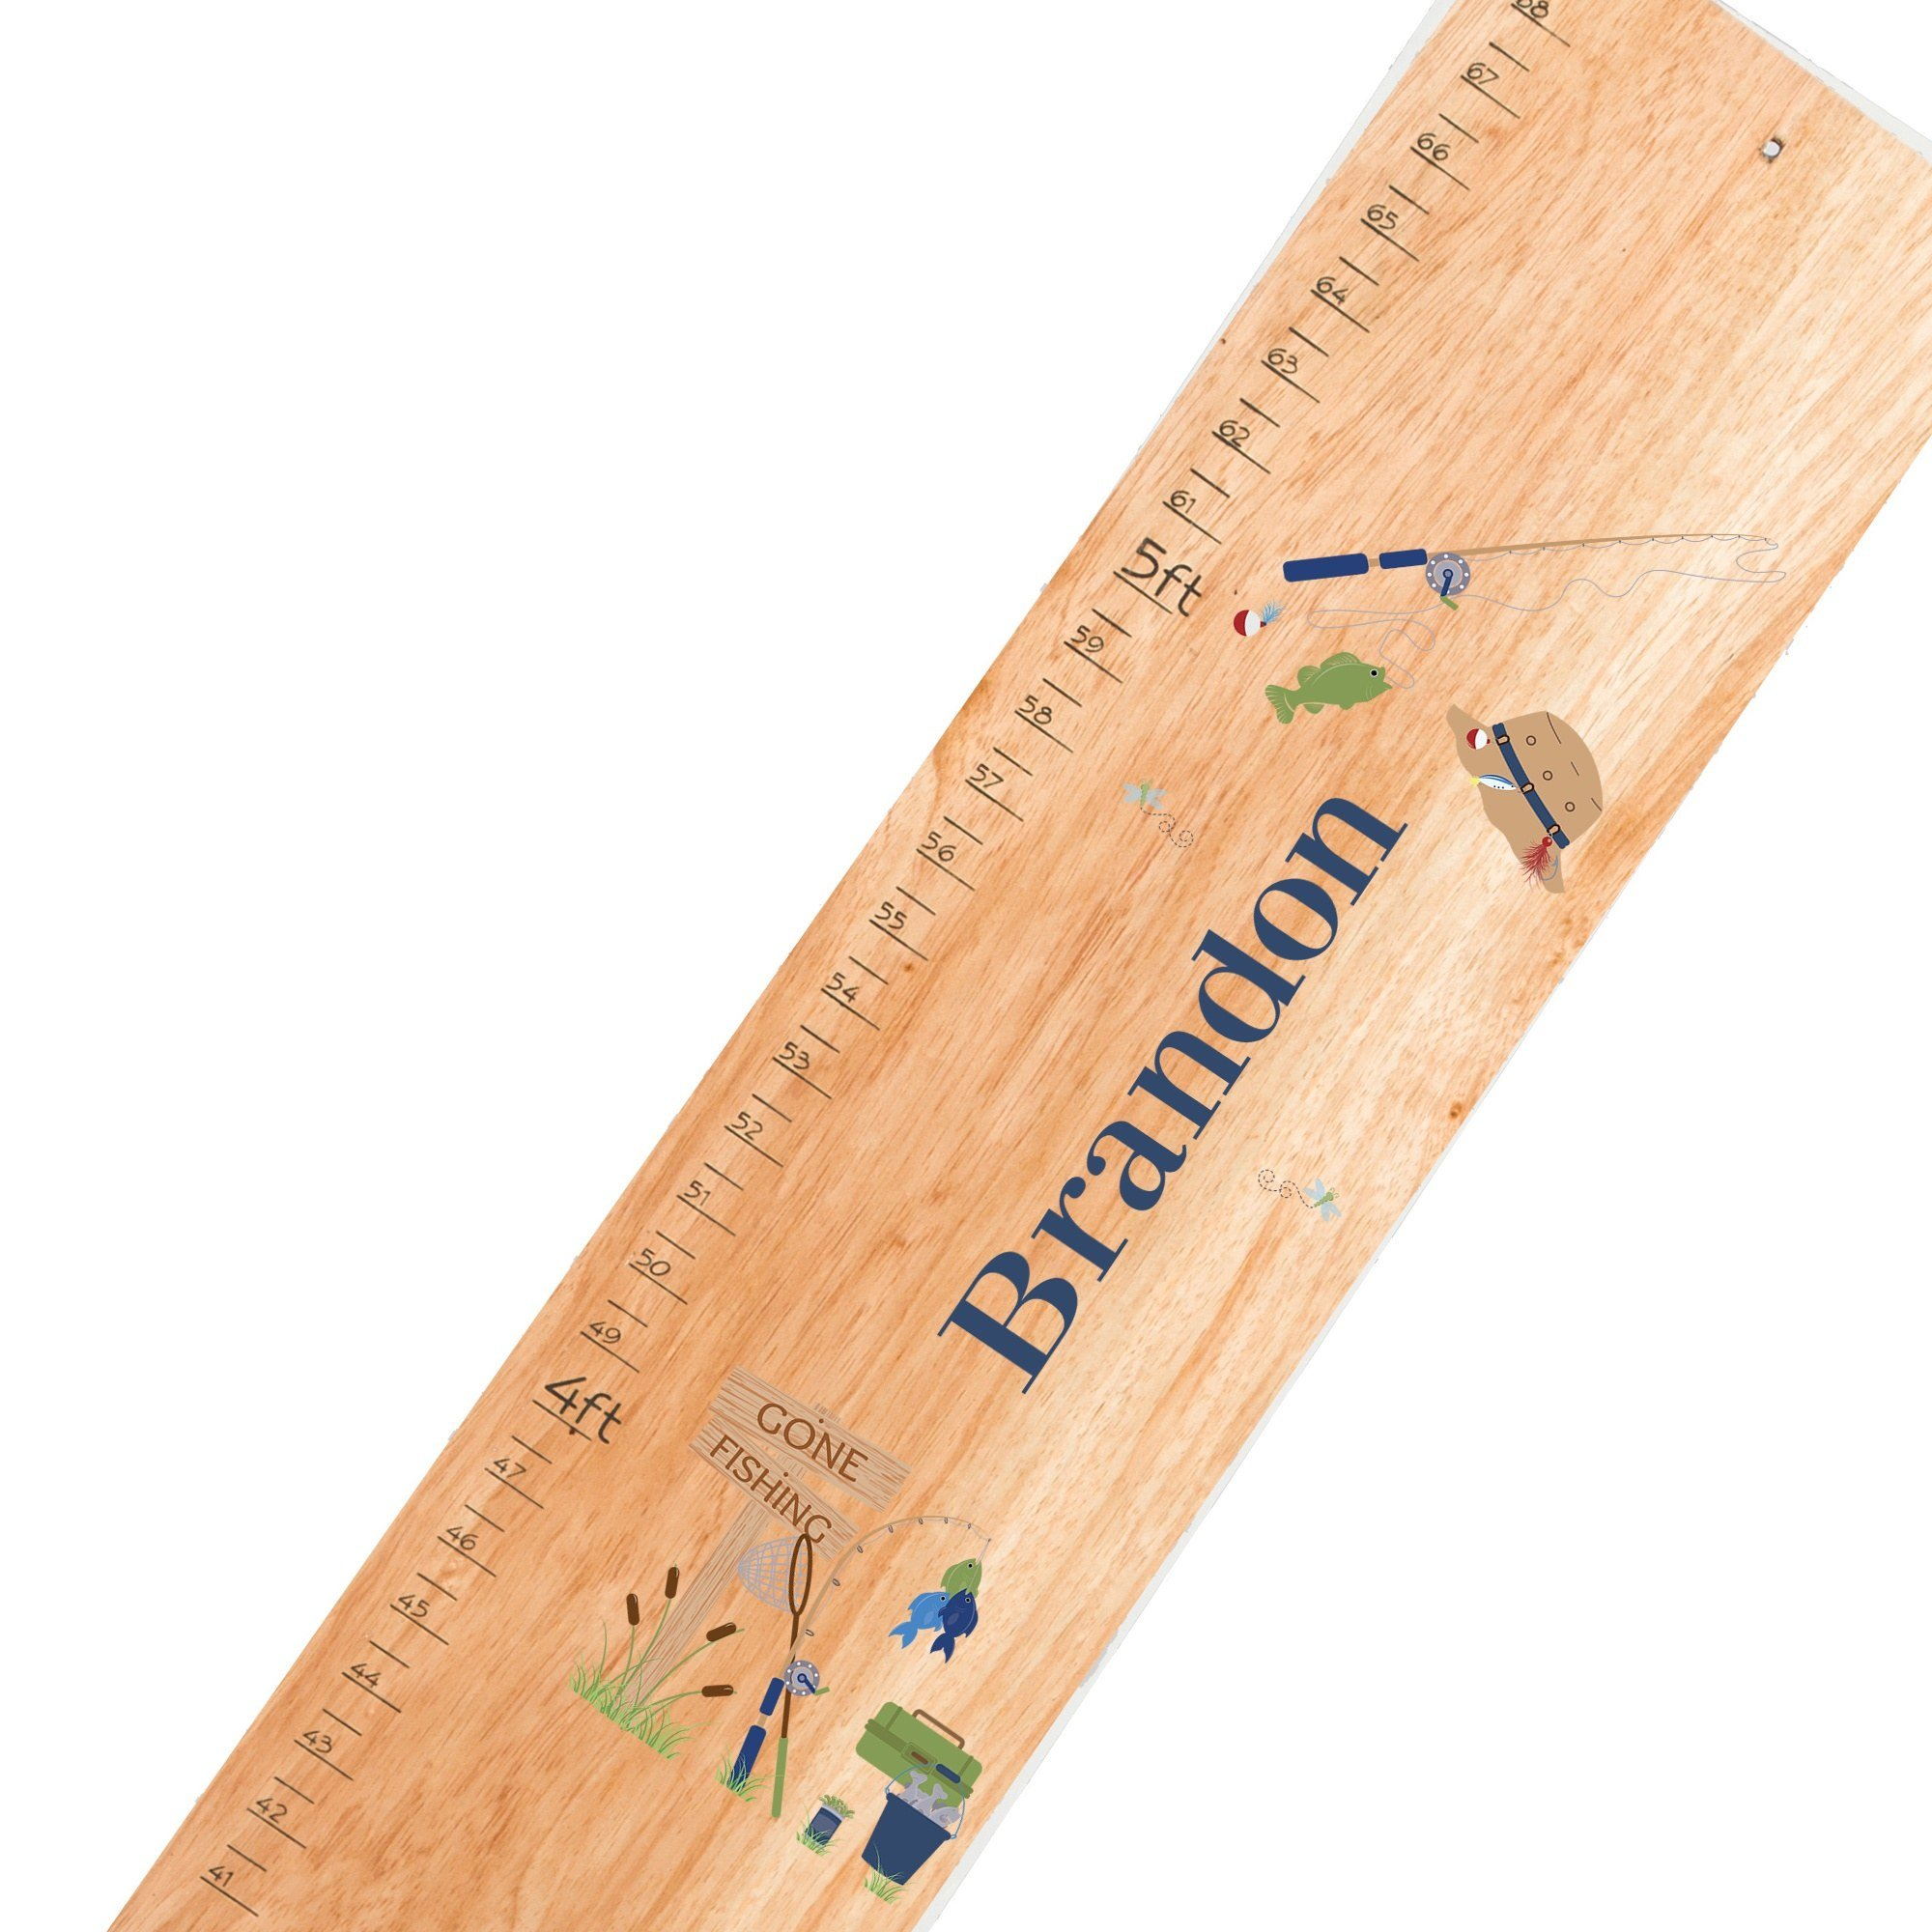 Personalized Gone Fishing Natural Growth Chart